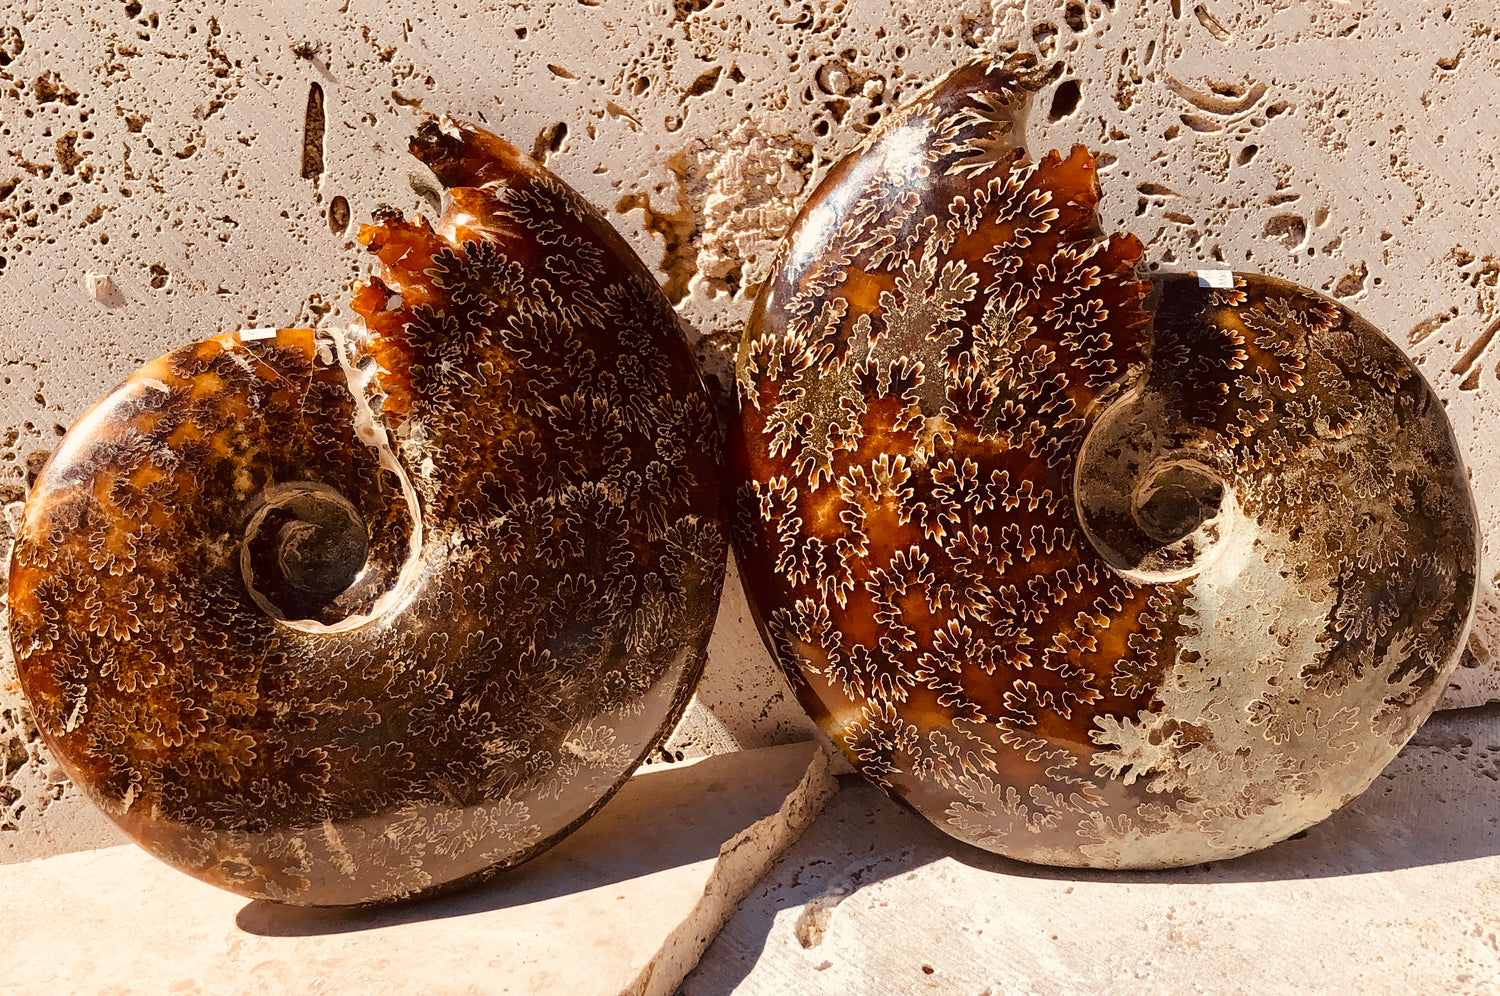 Larger Ammonite Fossiled with Chambered ends from Madagascar